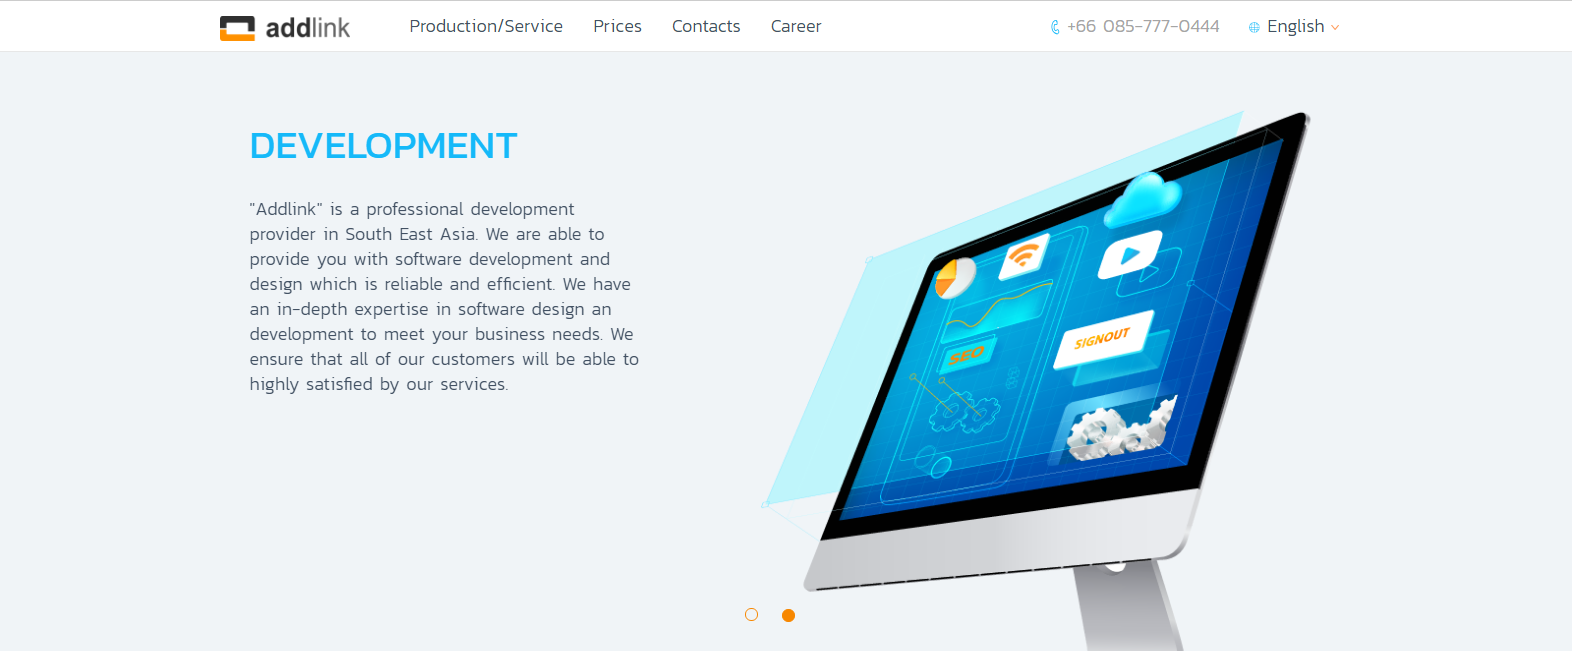 Web Design And Usability Analysis Design Of A Outsource Development Company Website From Se Asia Thailand Personas Usecases Implementation